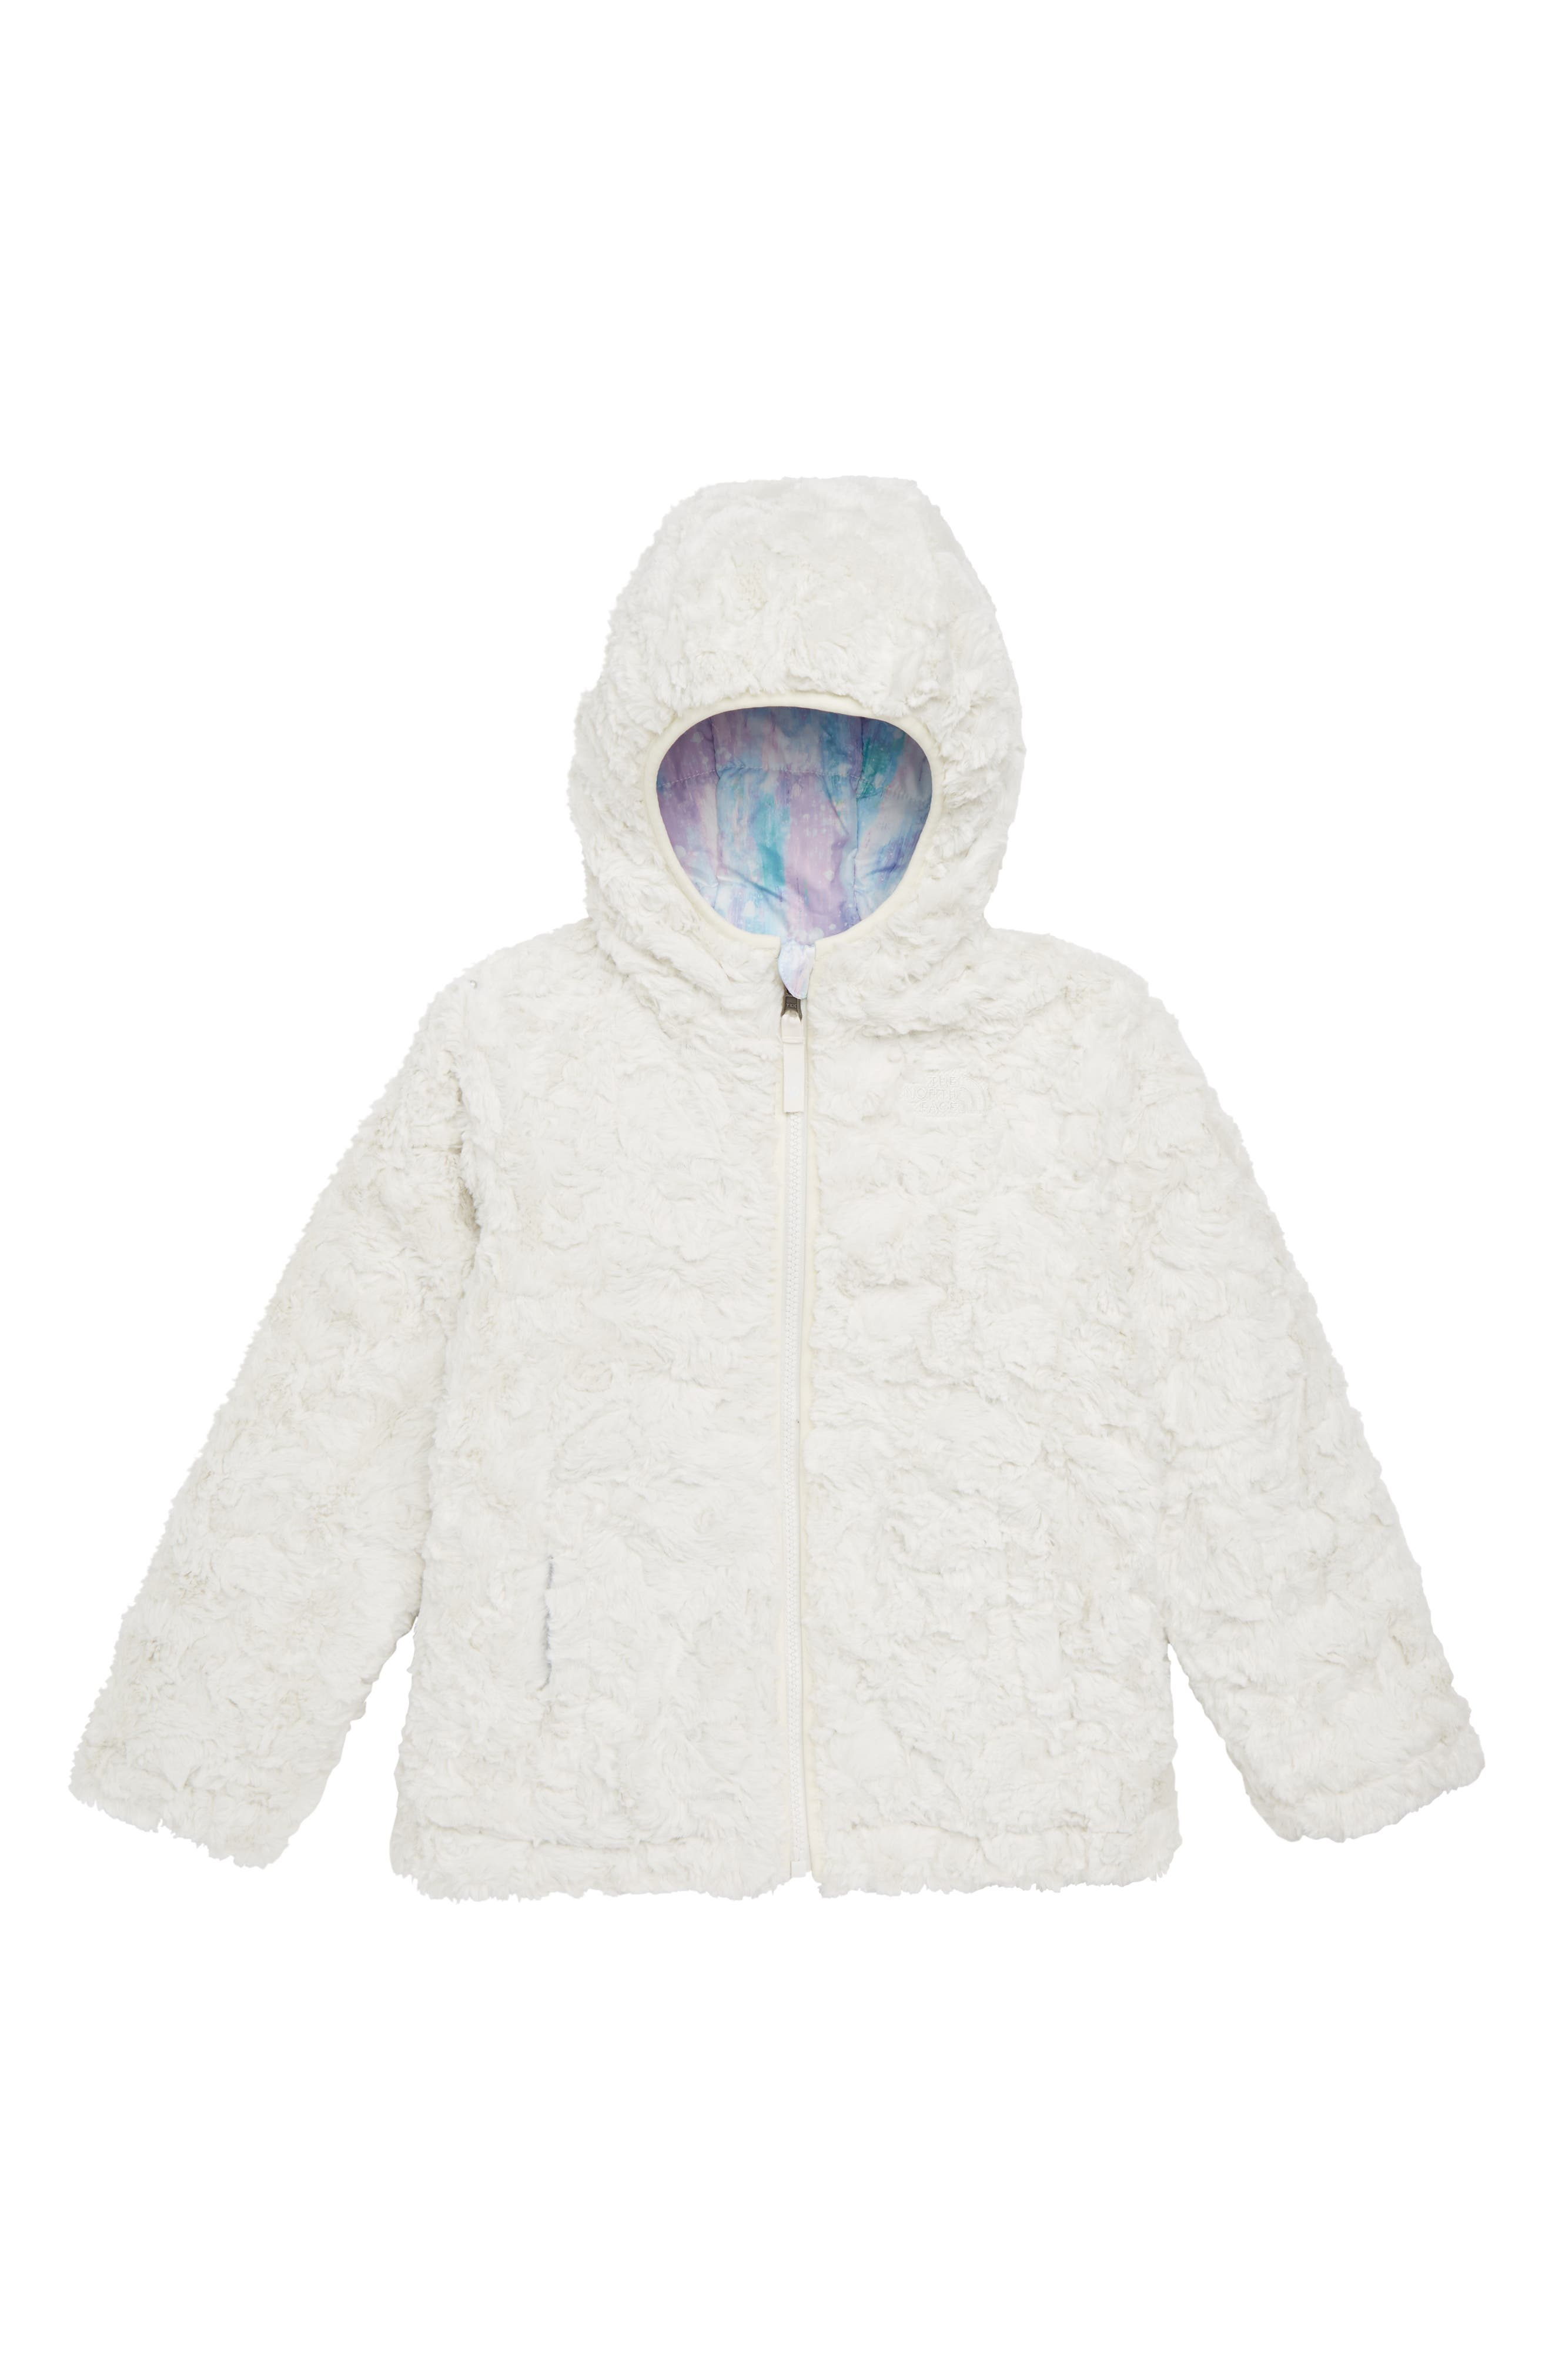 Mossbud Swirl Reversible Jacket,                             Alternate thumbnail 2, color,                             Purdy Pink Snow Dust Print